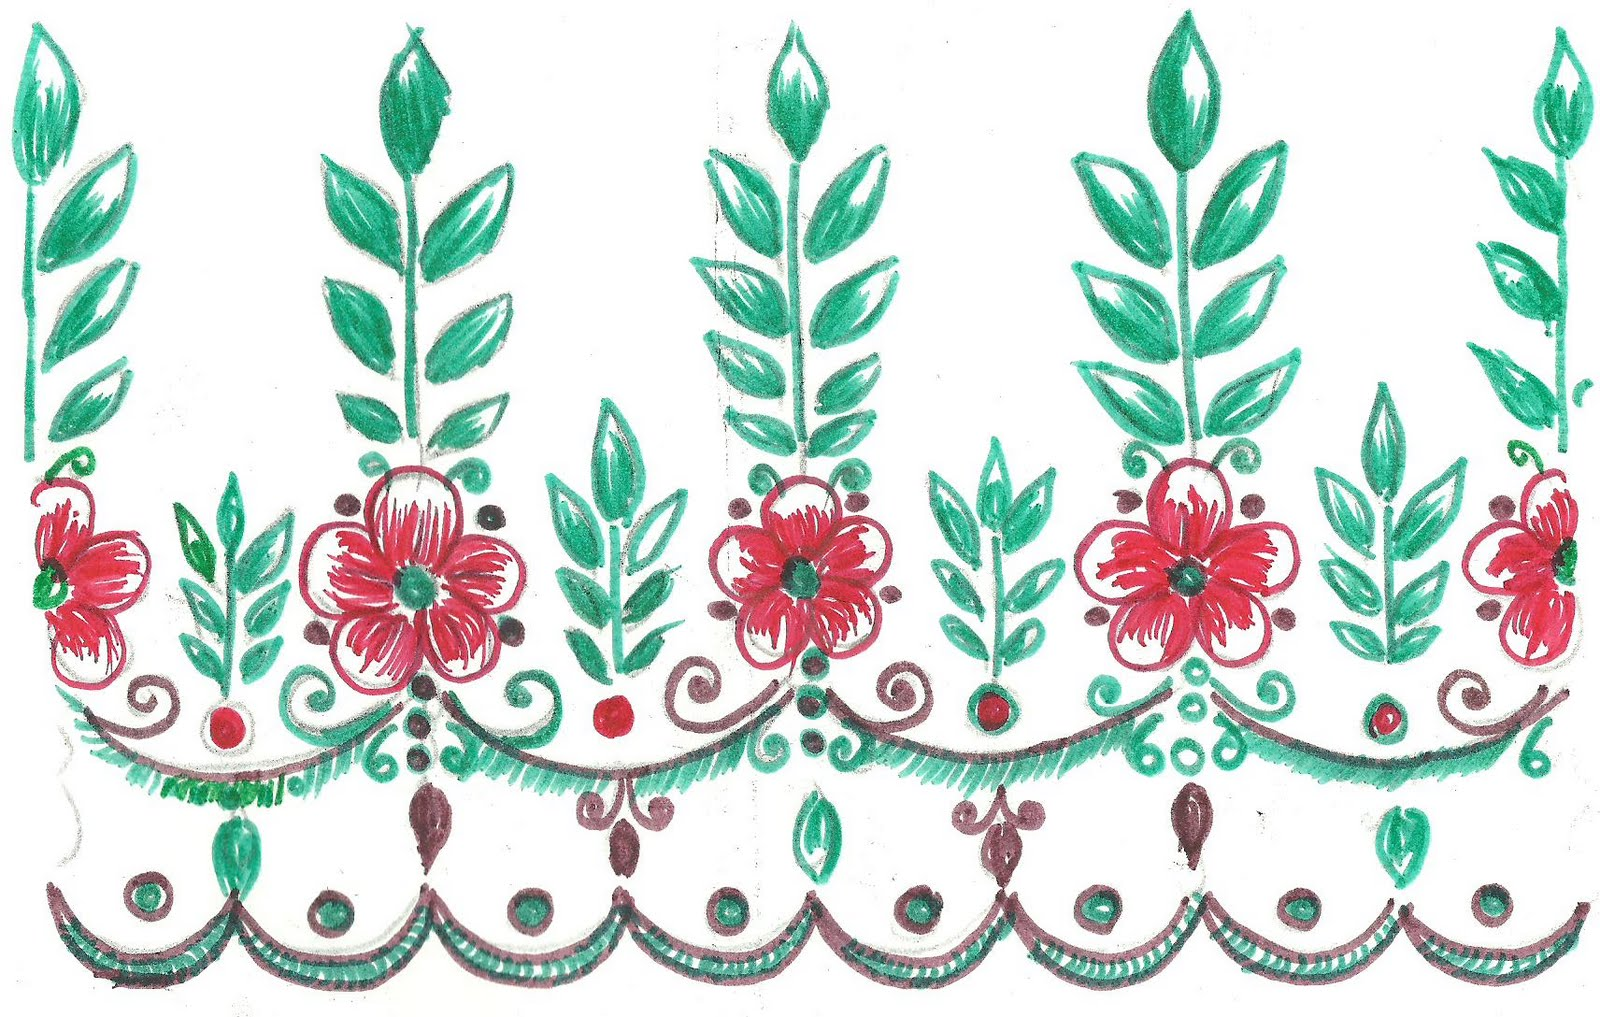 Outline embroidery designs for tablecloth - Art N Craft Fabric Paint Designs Art N Craft Hackbreizhfo Choice Image